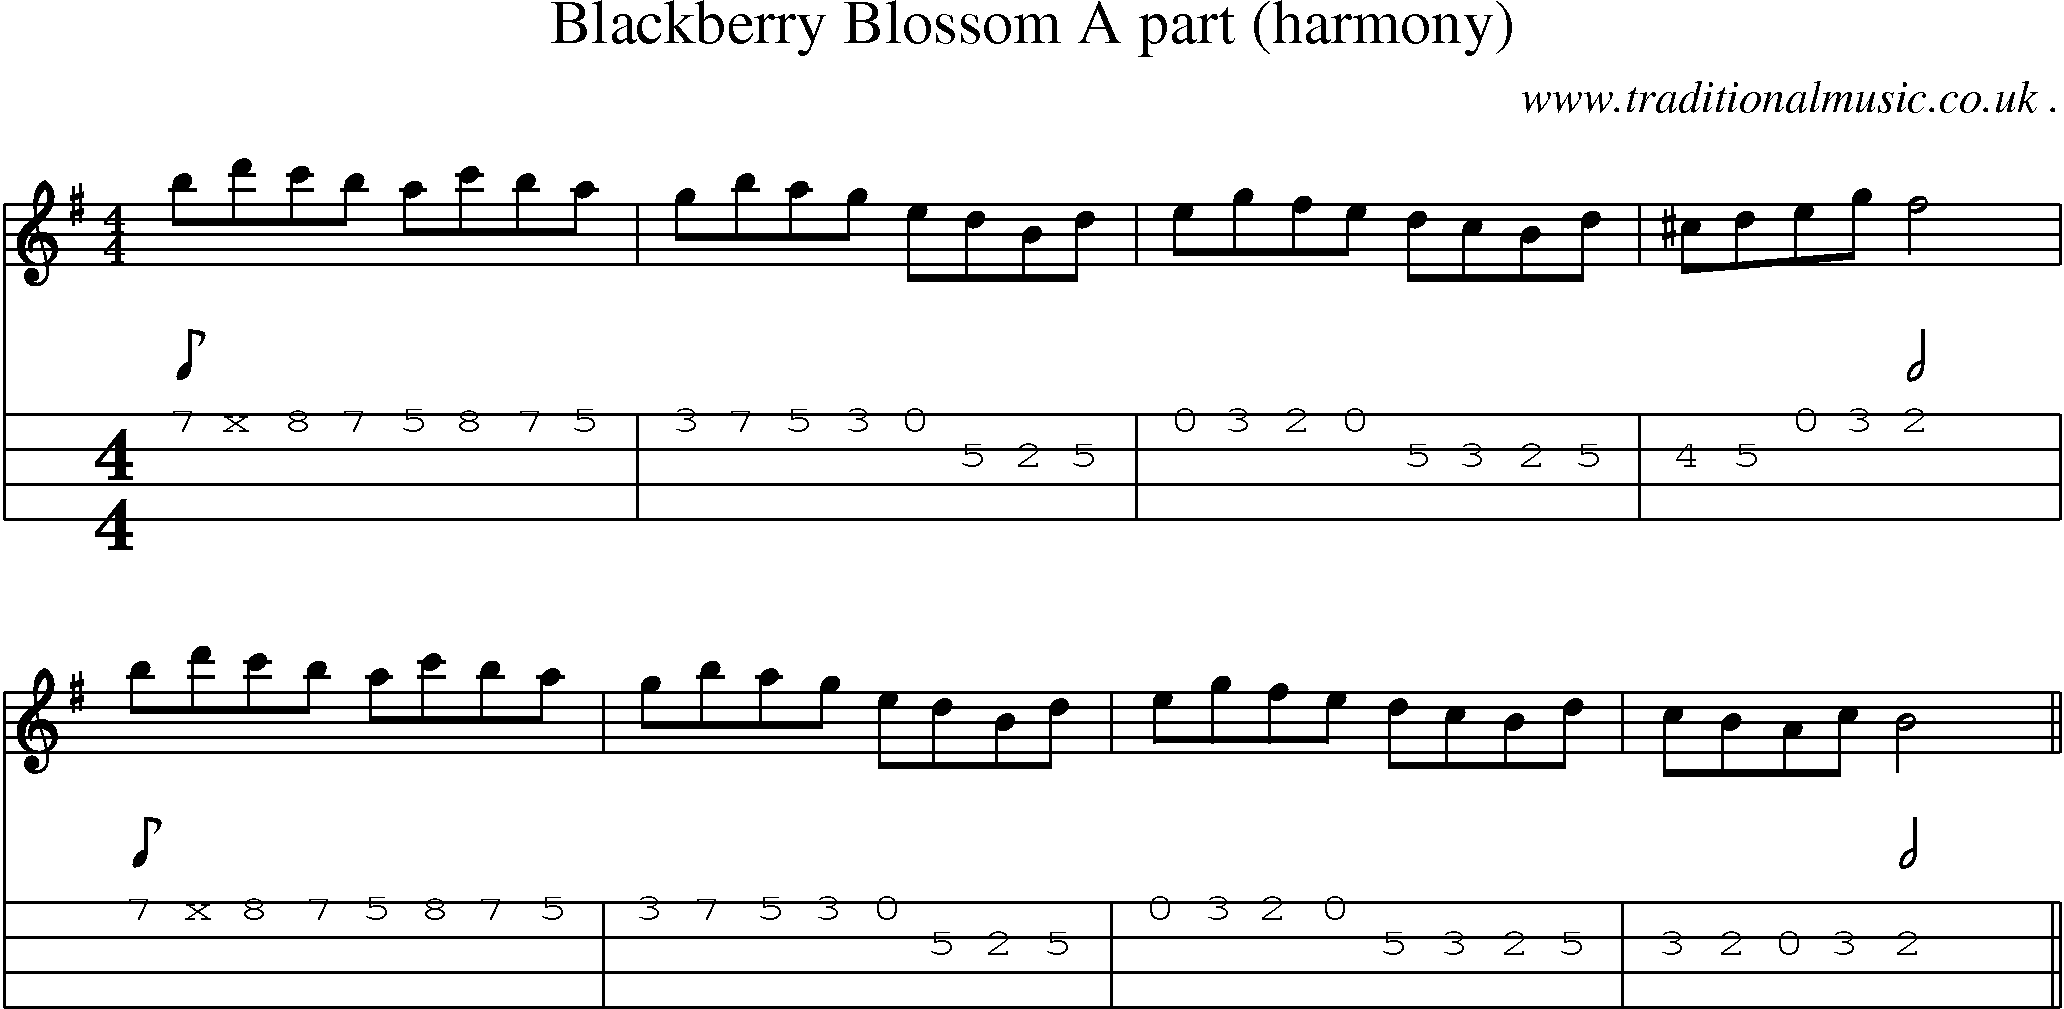 Common session tunes, Sheetmusic, Tabs for Mandolin, midi and mp3 for Blackberry Blossom A Part ...